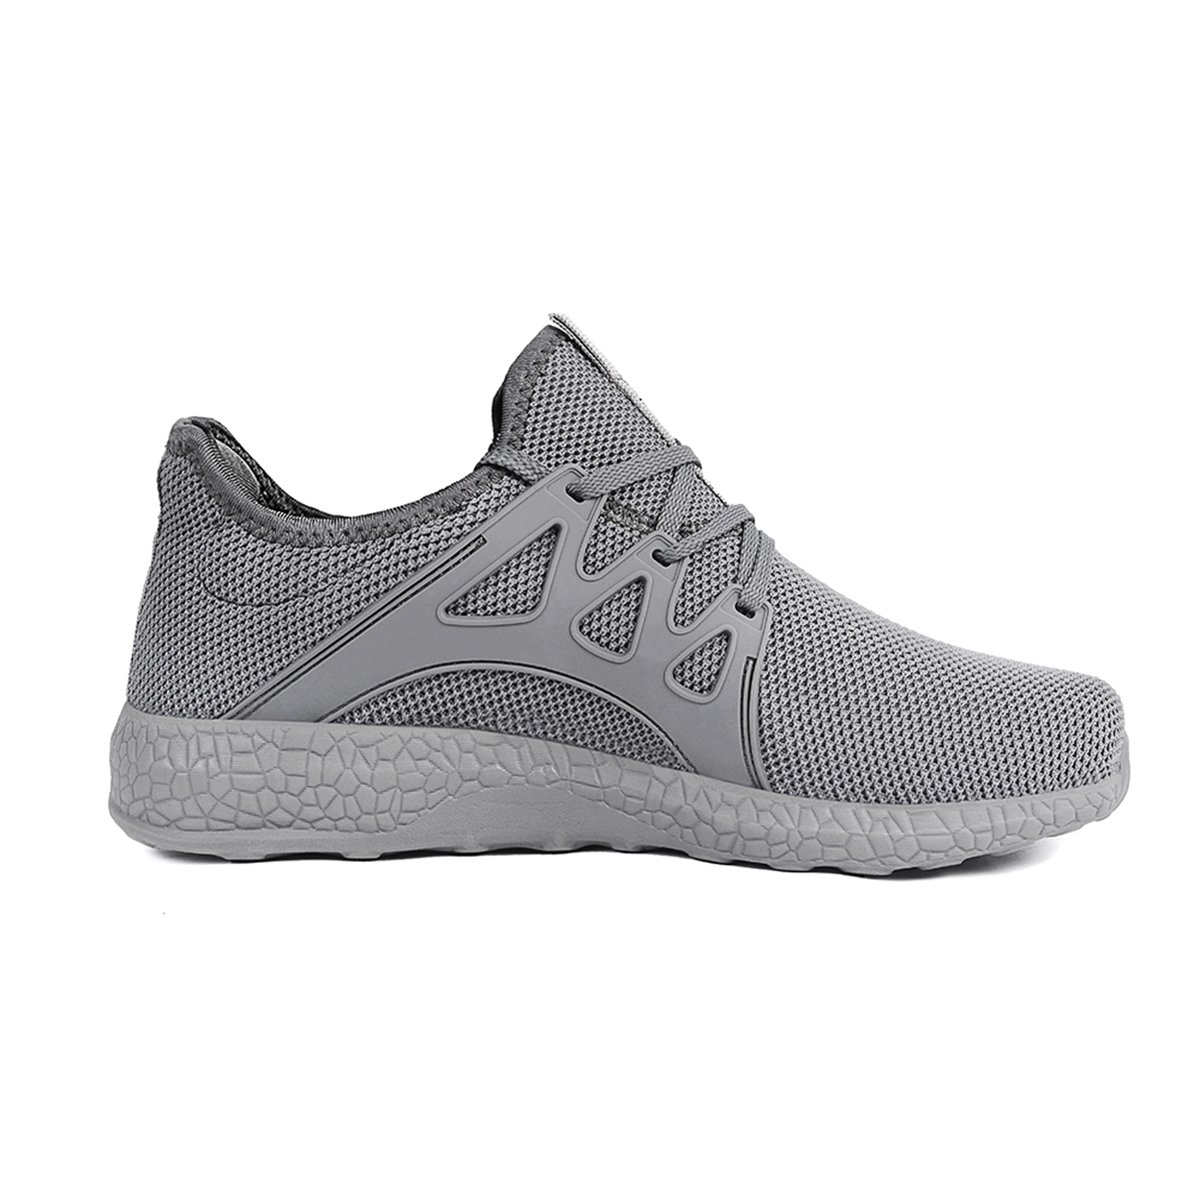 Feetmat Womens Sneakers Ultra Lightweight Breathable Mesh Walking Gym Tennis Athletic Running Shoes B0769SD5J5 9.5 M US|Grey